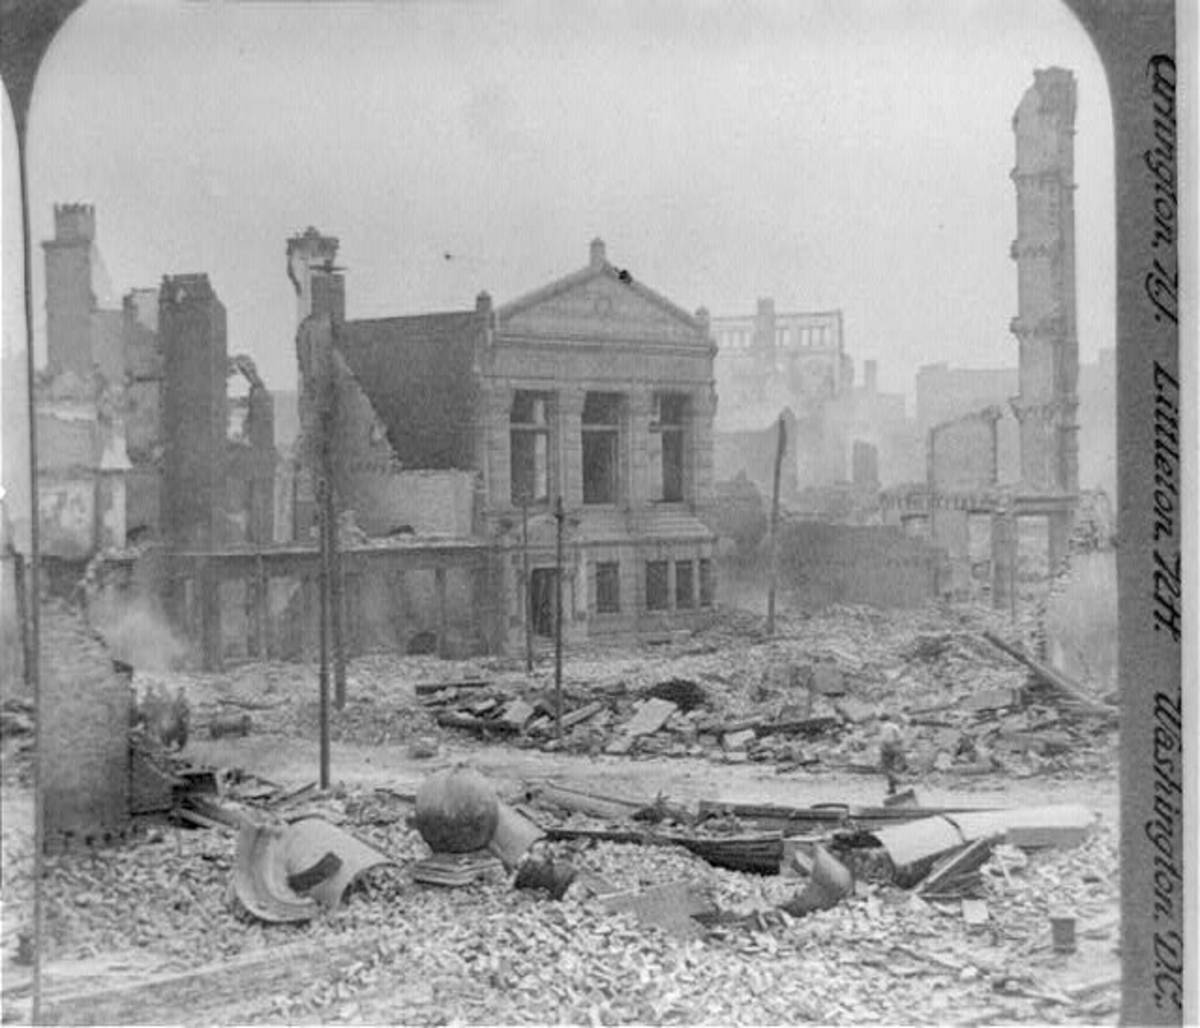 Baltimore's Great Fire of 1904 and Its Legacy